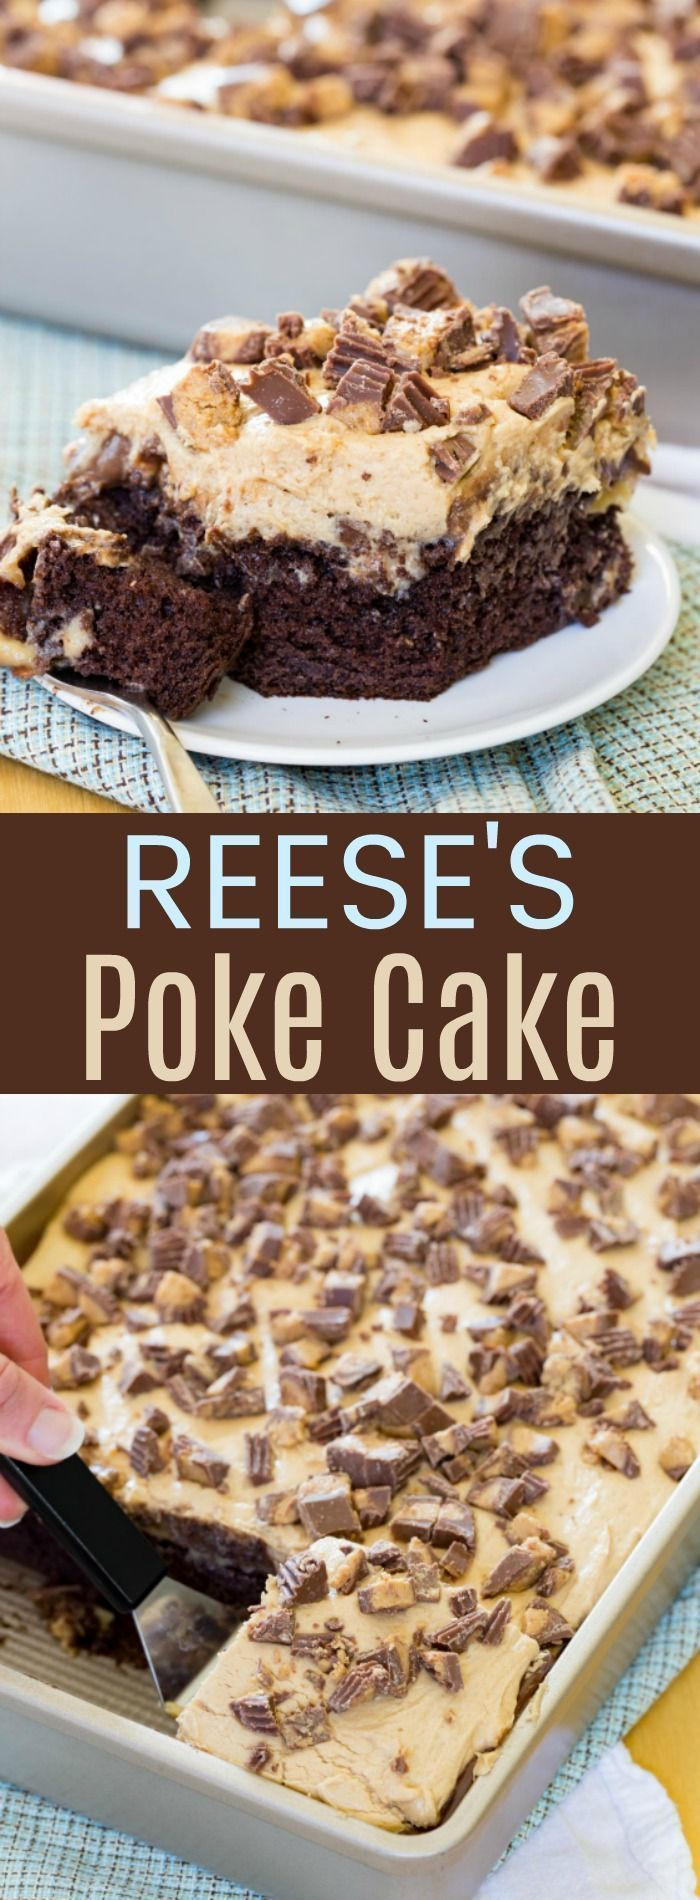 Reese's Poke Cake - an easy dessert recipe loaded with chocolate, peanut butter, and peanut butter cups! Perfect for parties and potlucks!